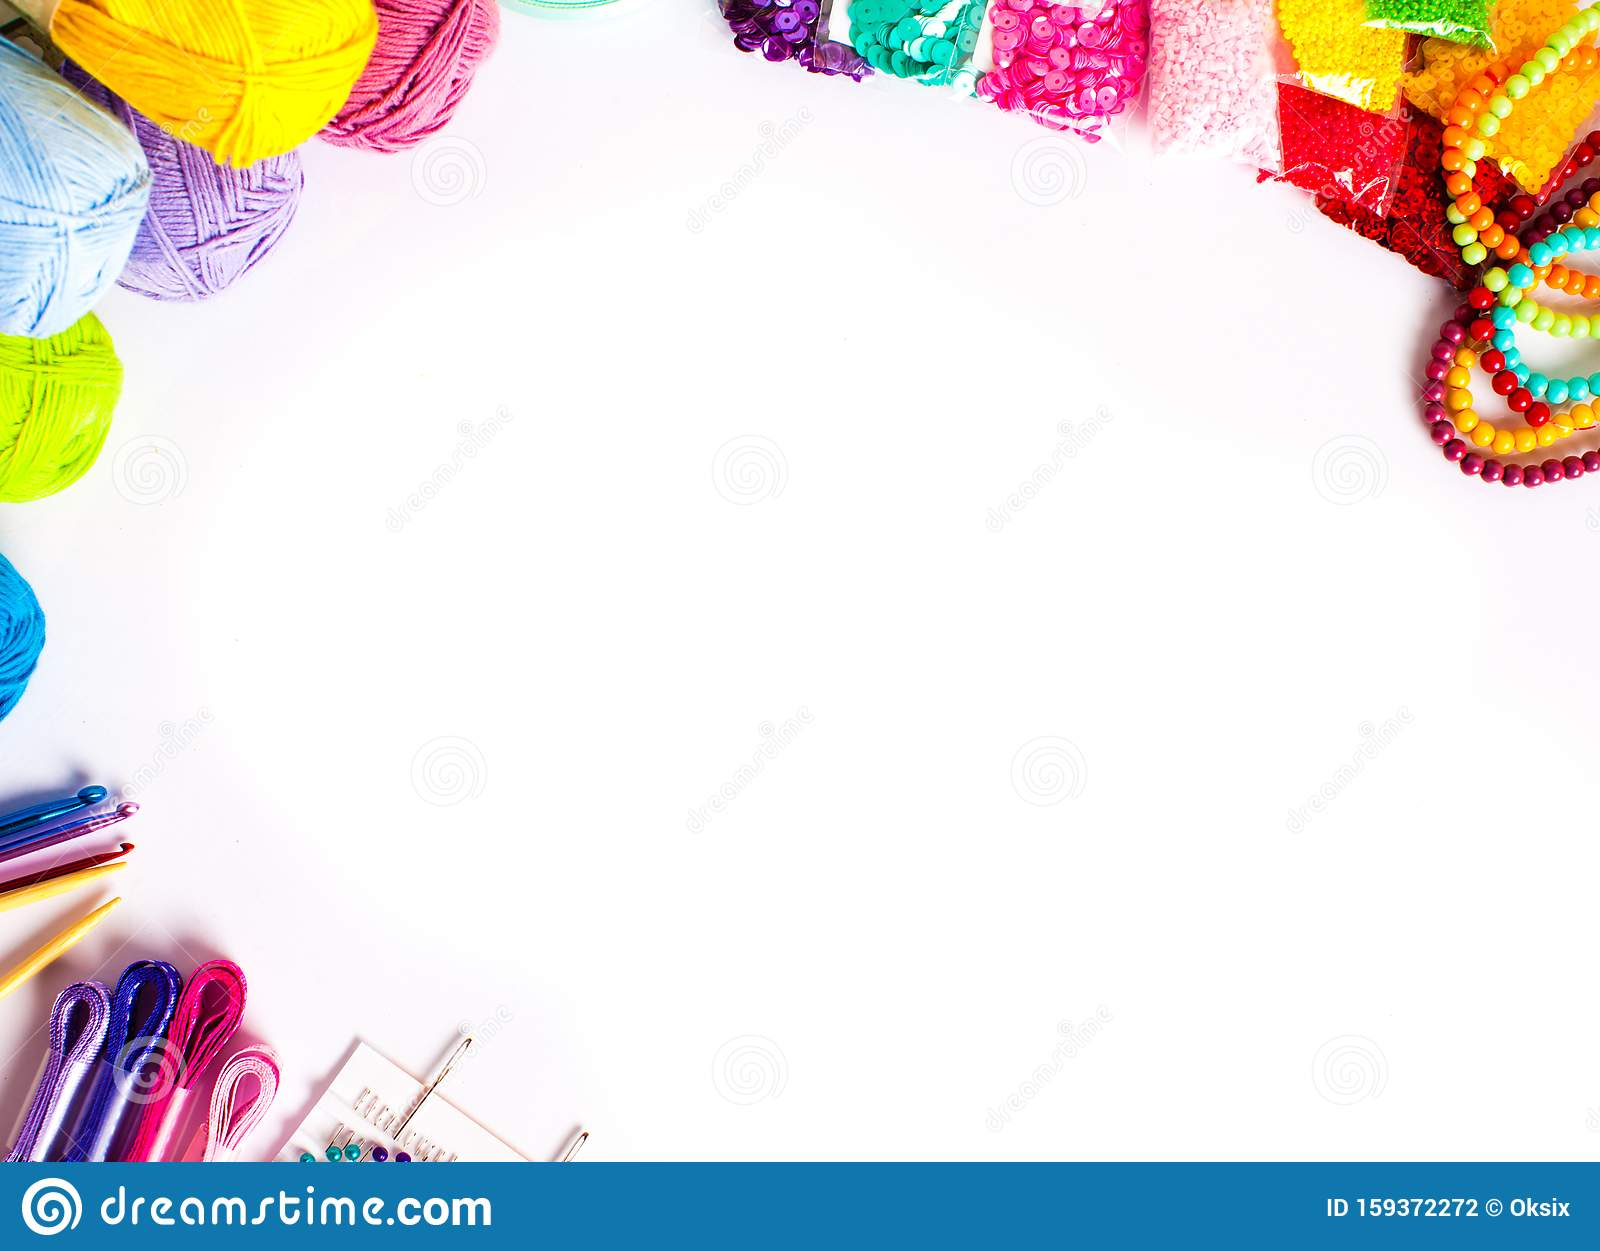 Craft Supplies For Diy Top View Frame Isolated On White Stock Photo Image Of Card Crochet 159372272